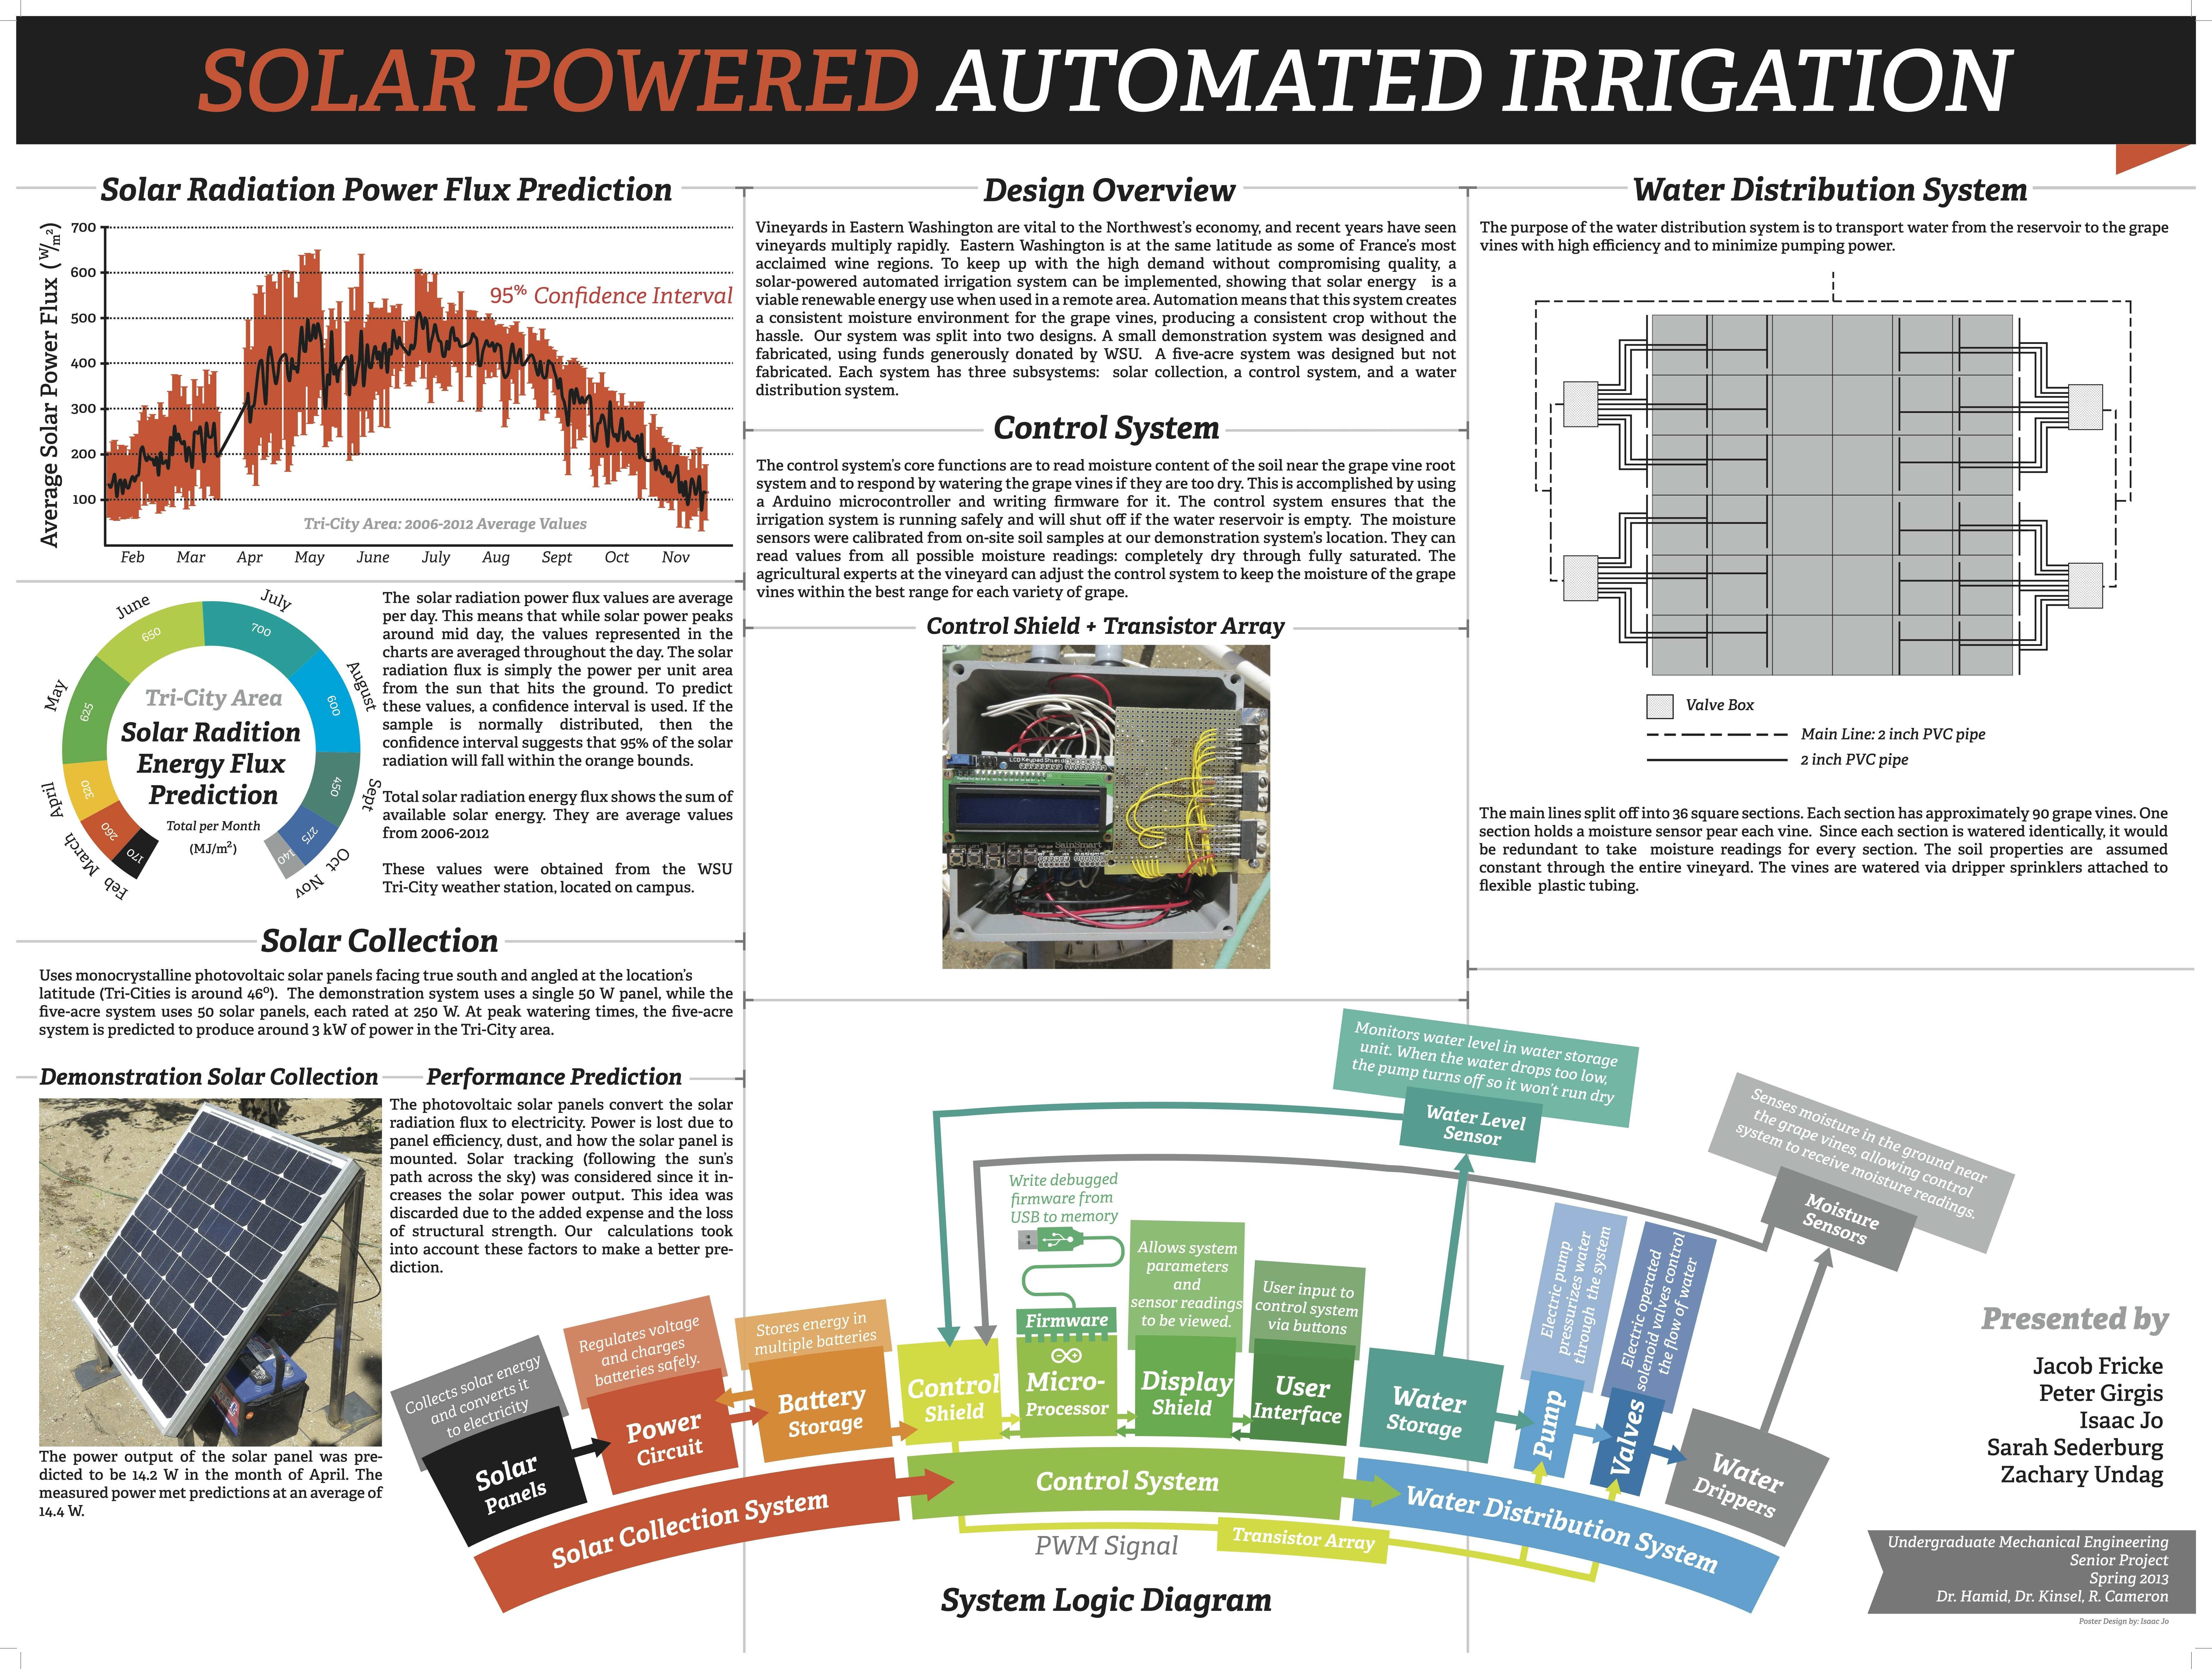 Mechanical Engineering Senior Project Poster | Mechanical ...